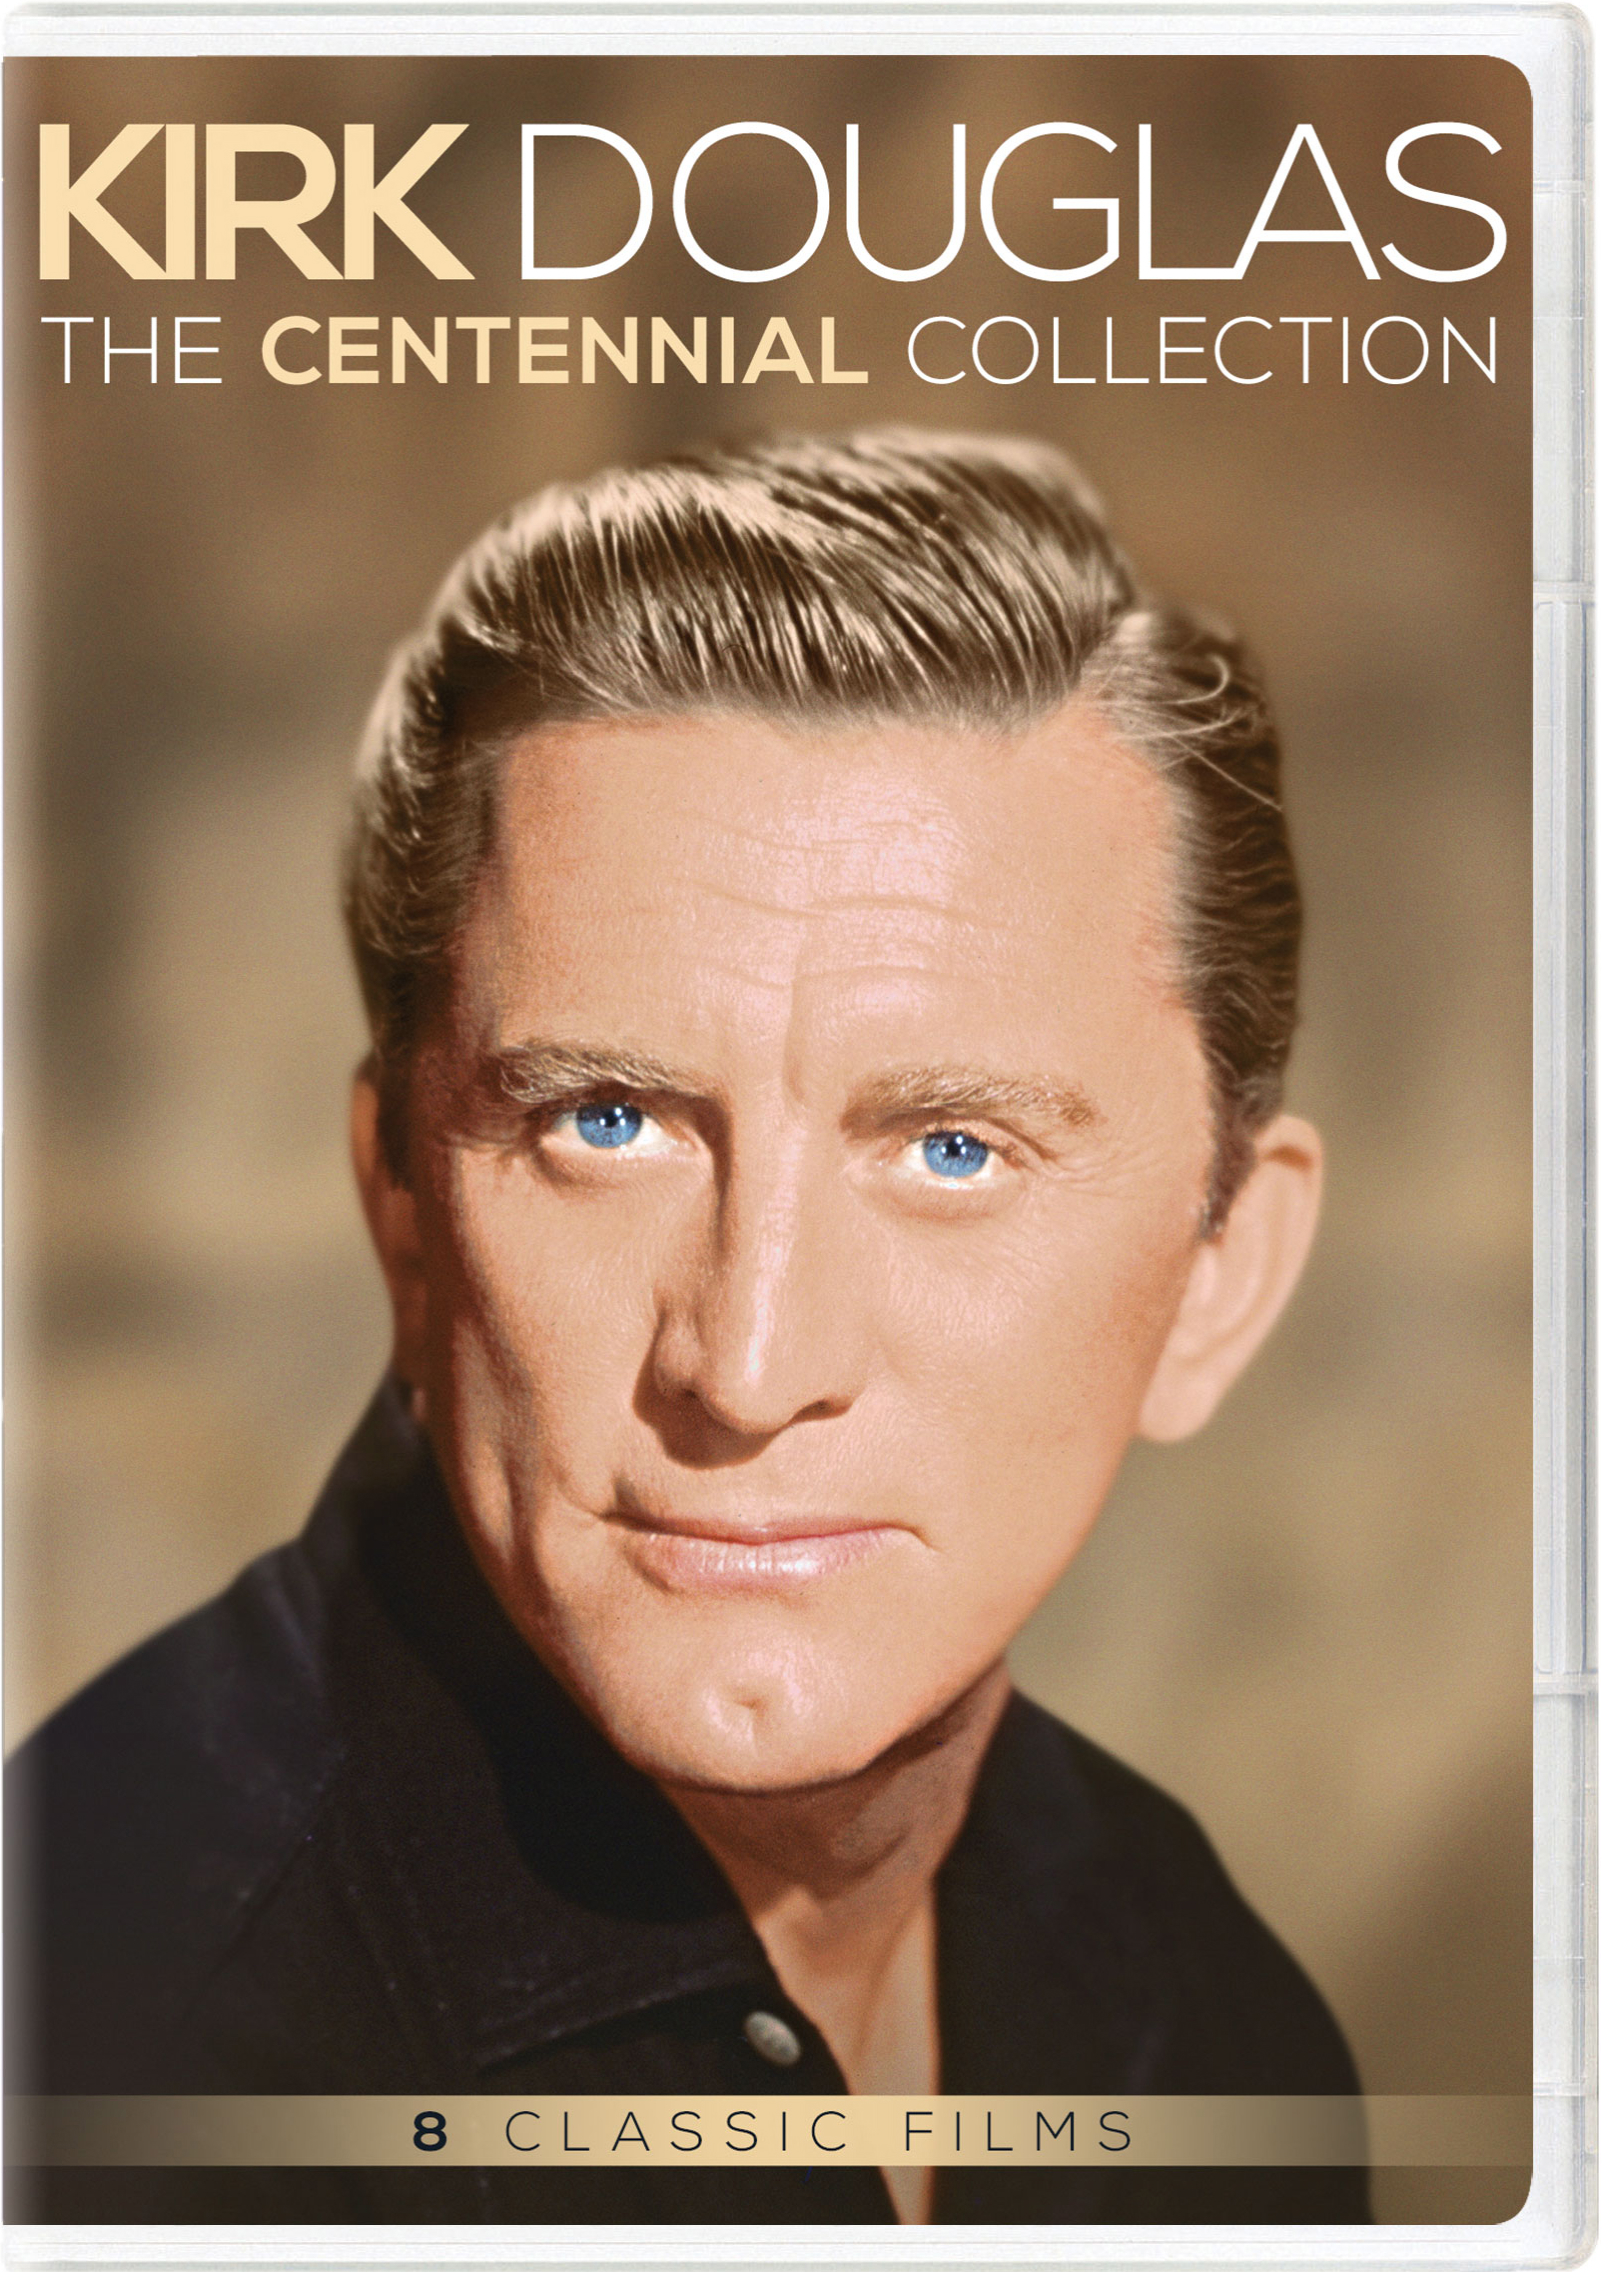 Kirk Douglas: The Centennial Collection (Box Set) [DVD]